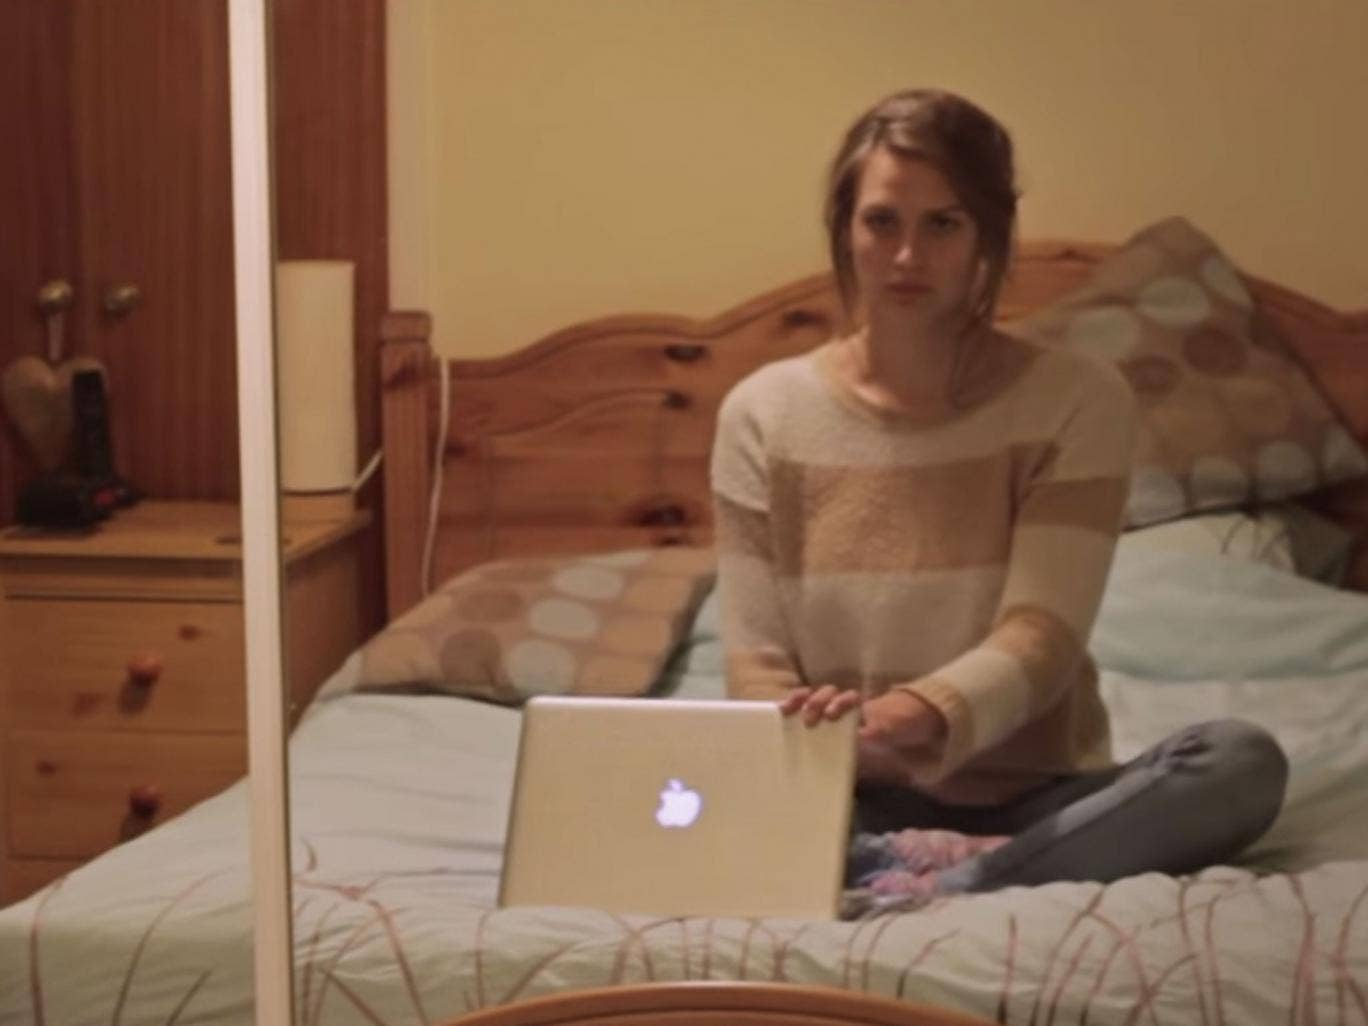 Gary Turk's short film 'Look Up' has proved hugely popular among social media users - despite the irony involved